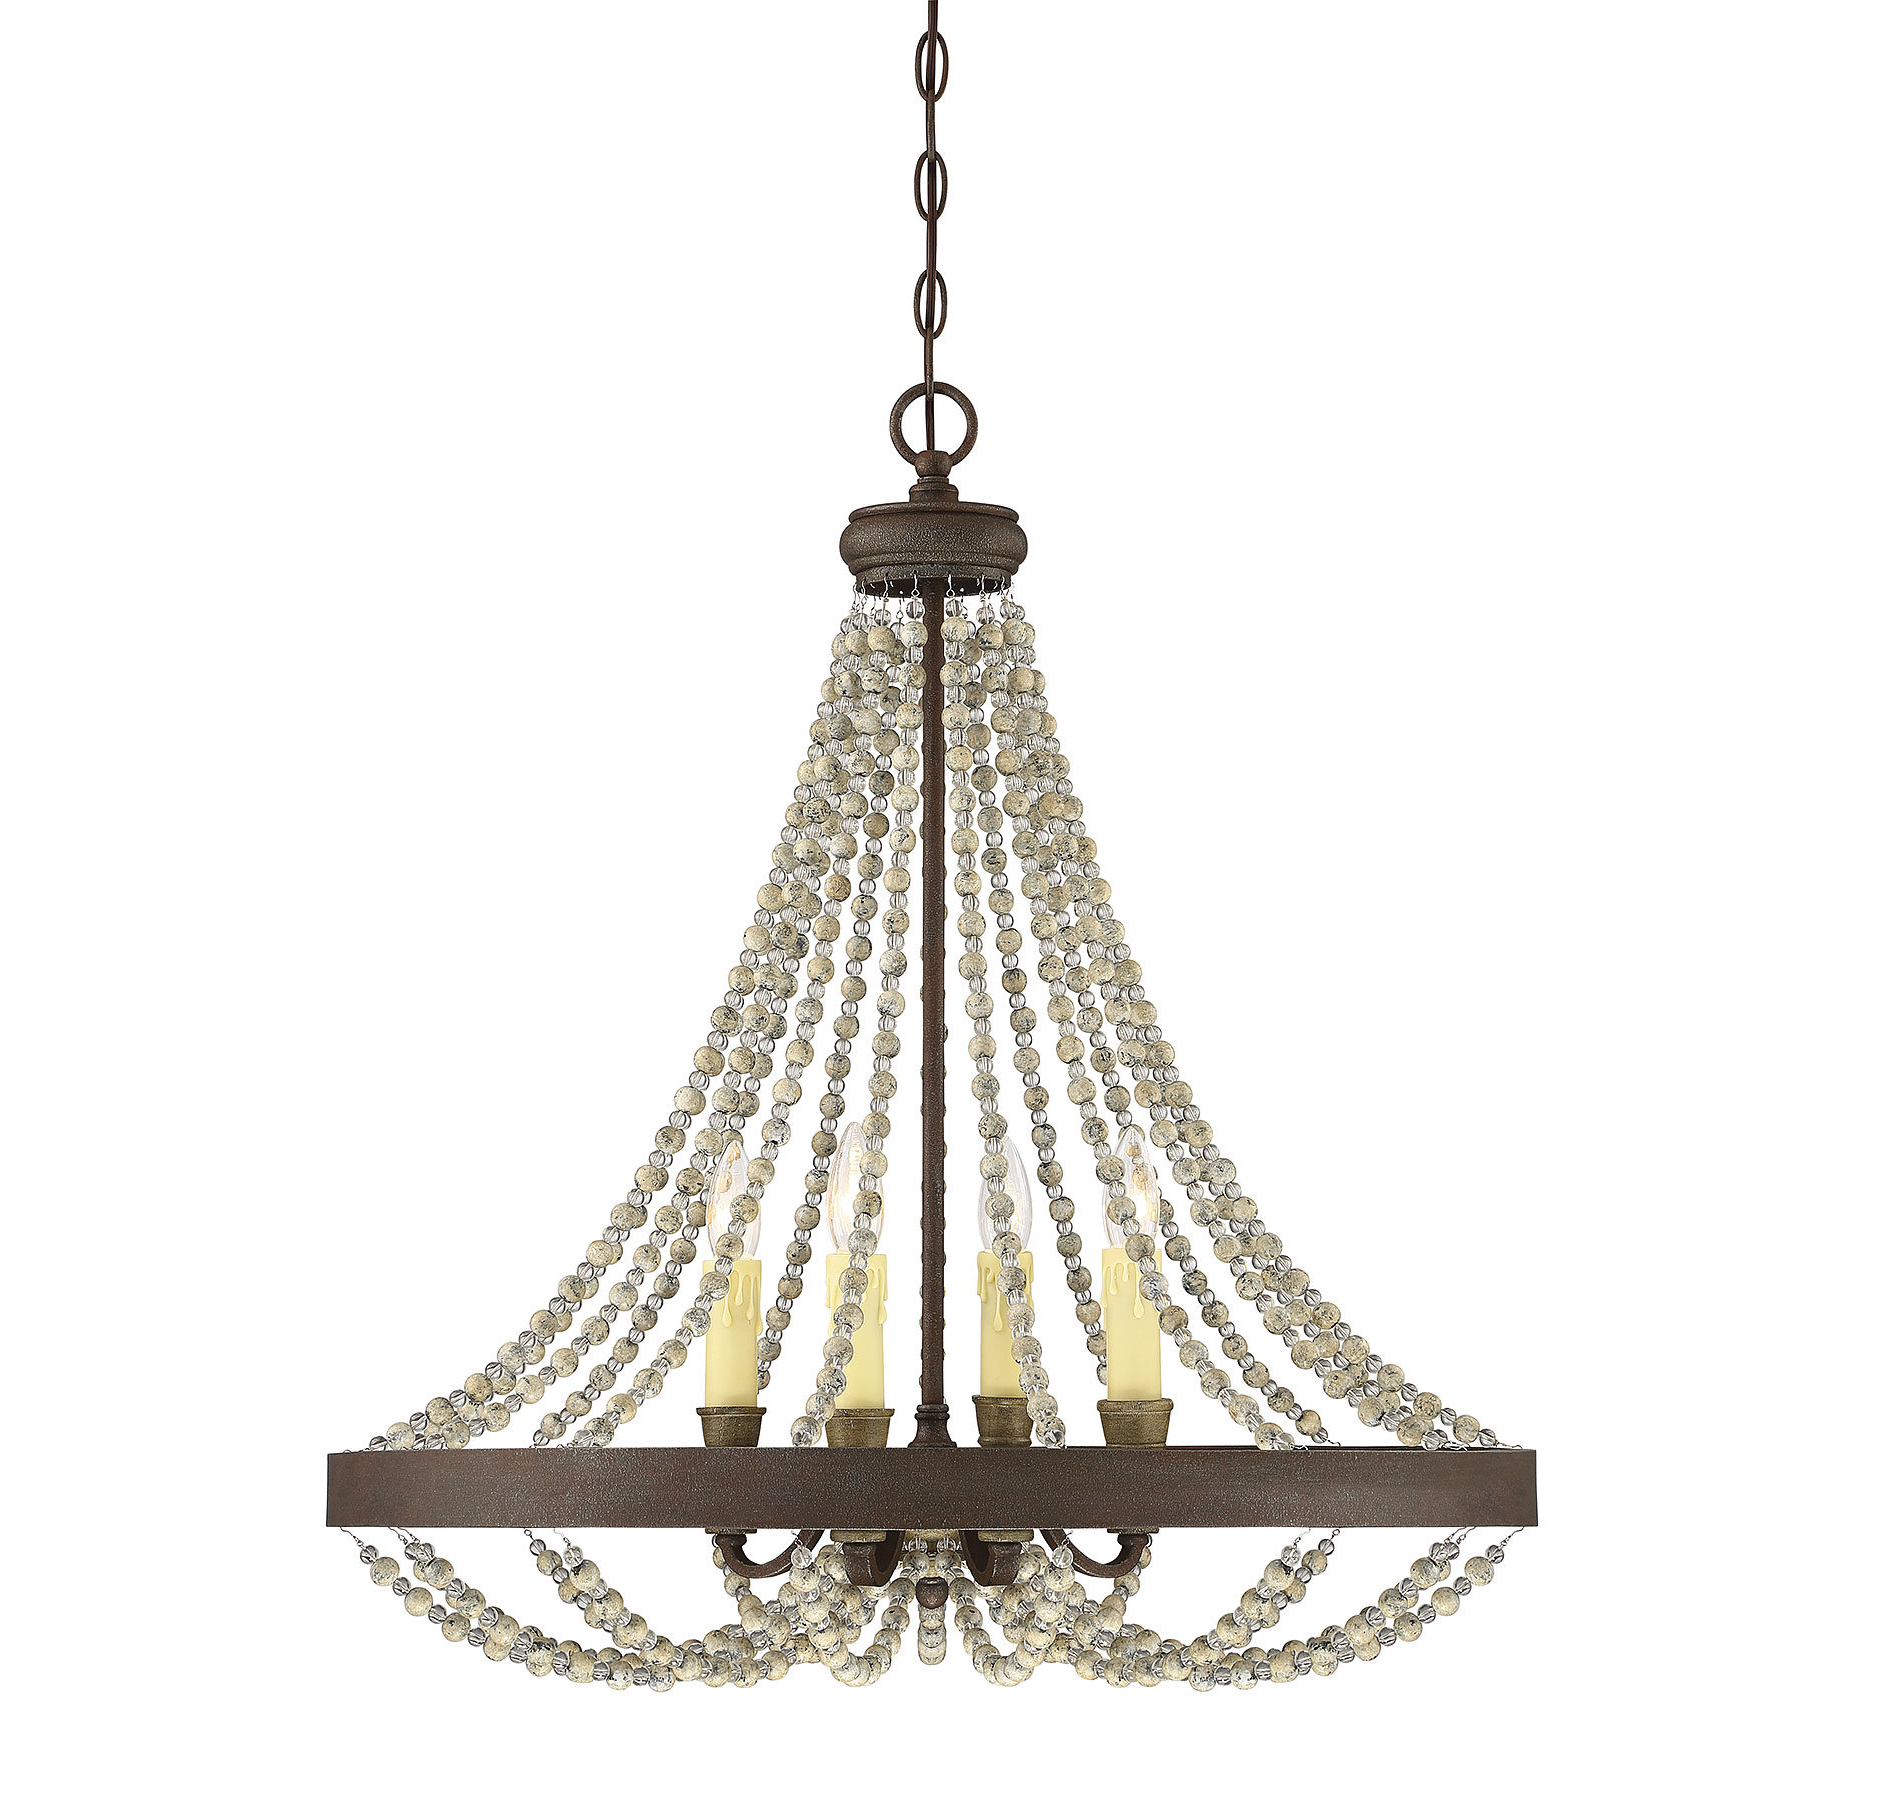 Artana 4 Light Candle Style Chandelier Throughout Popular Whitten 4 Light Crystal Chandeliers (Gallery 6 of 20)